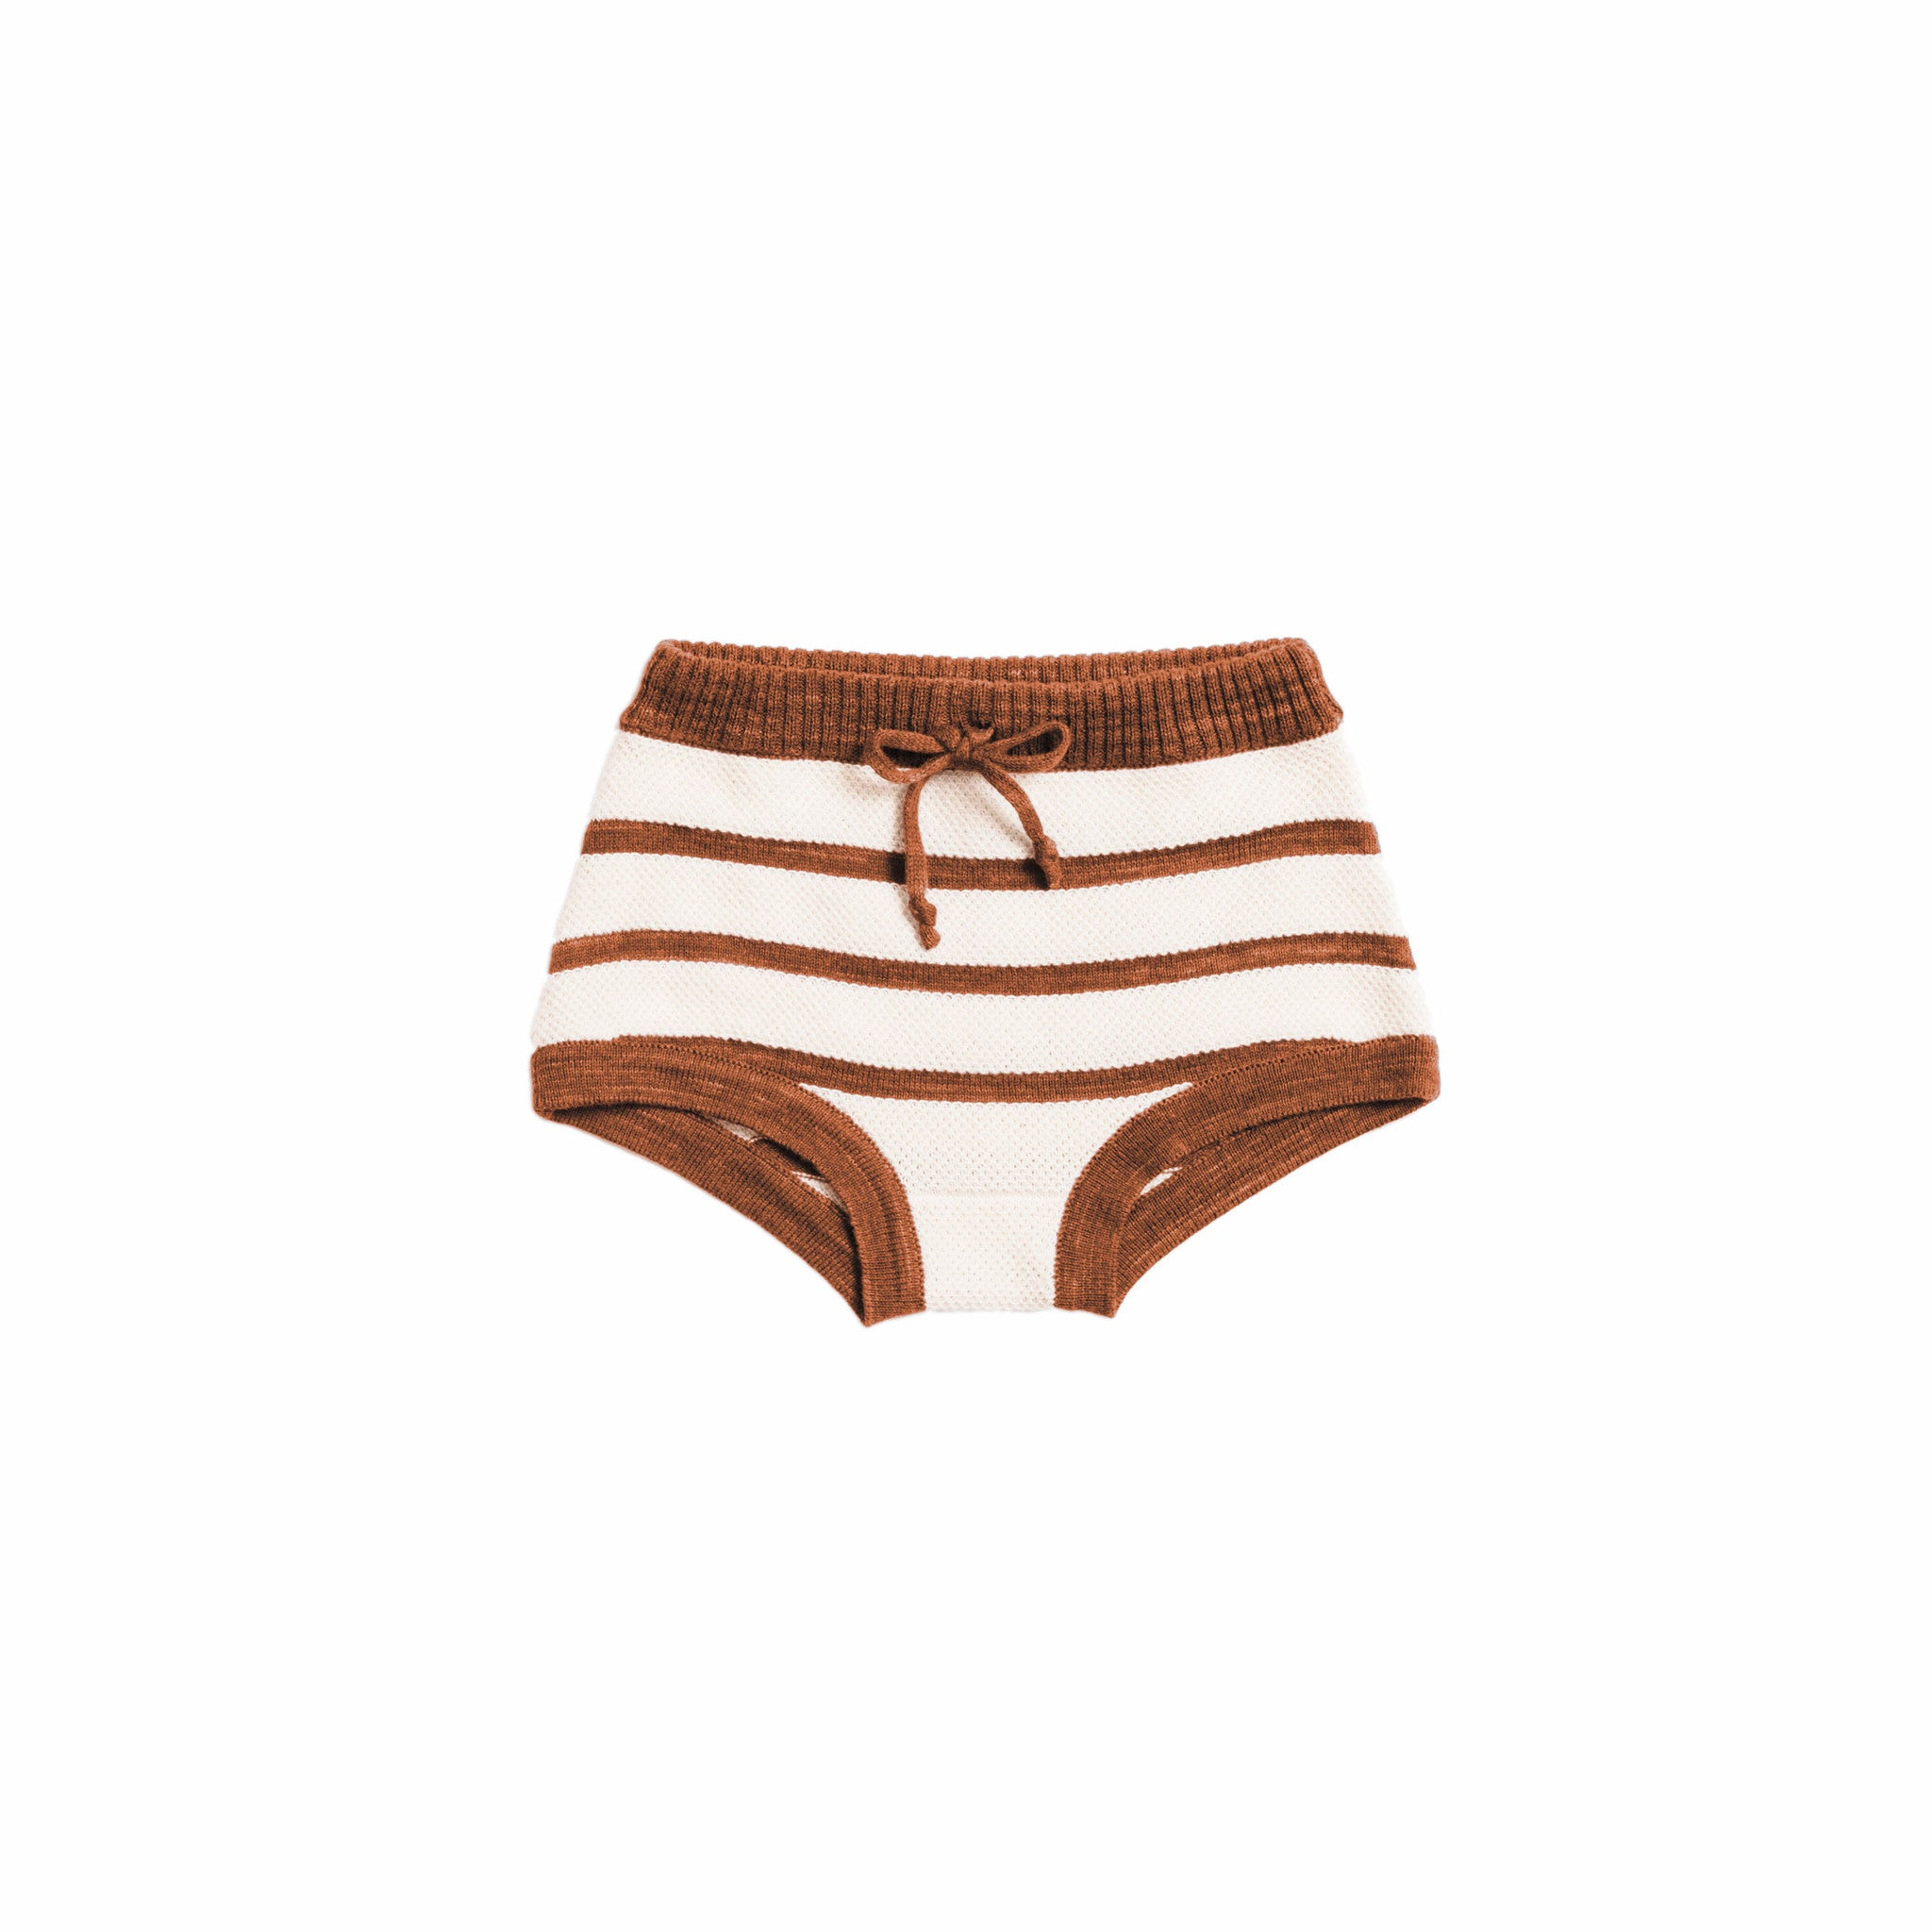 Misha & Puff Terracotta/Natural Boardwalk Bloomer - Ladida